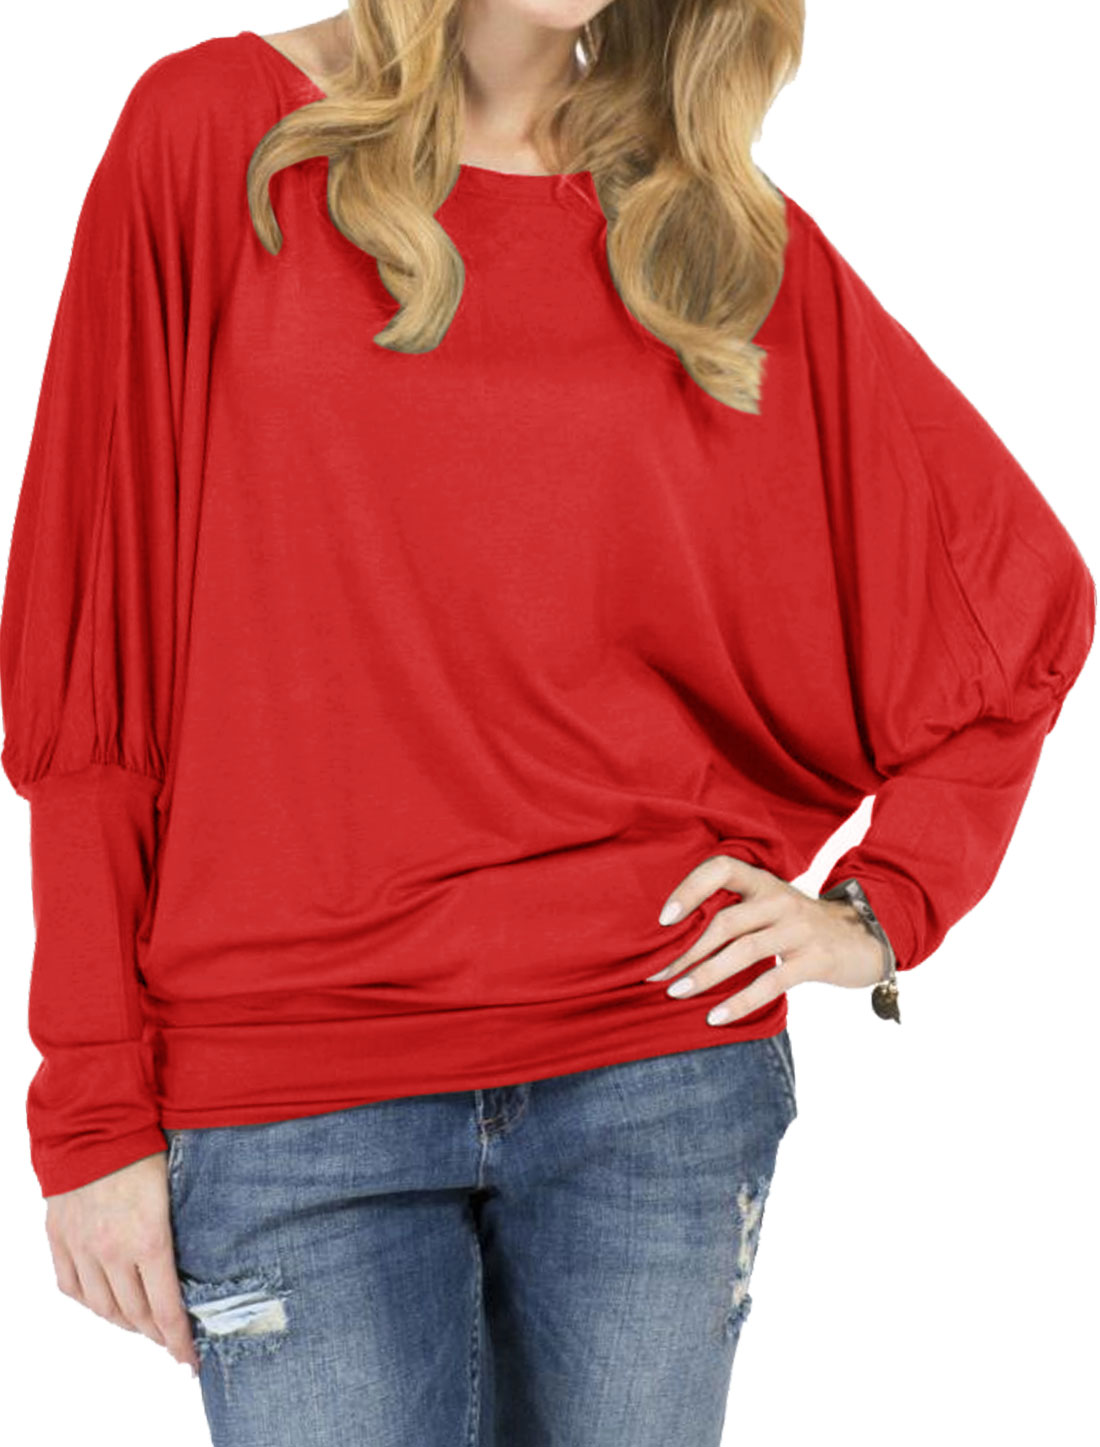 Women Boat Neck Long Sleeves Loose Fit T-Shirt Red S